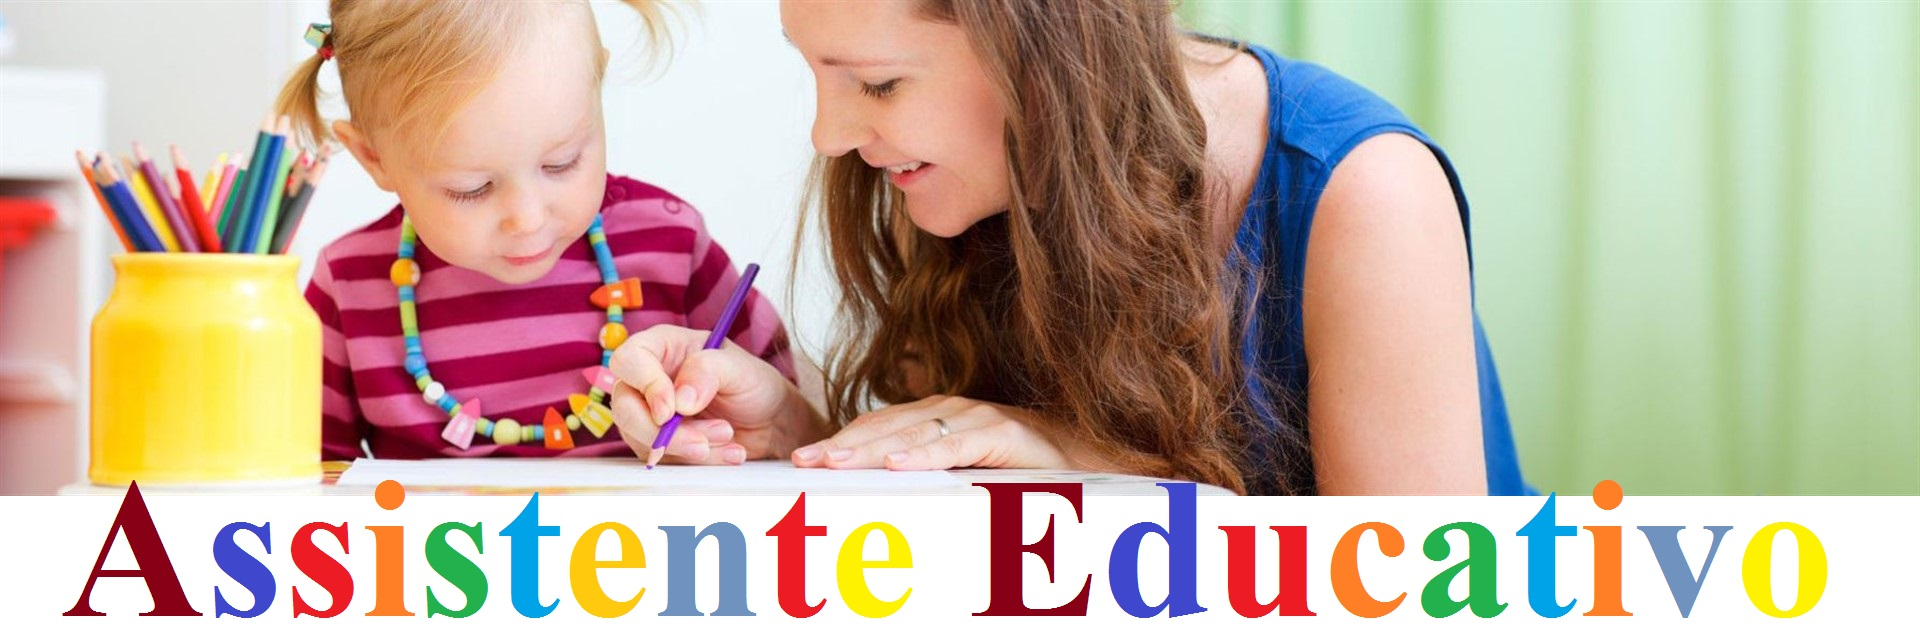 Corso di Assistente Educativo